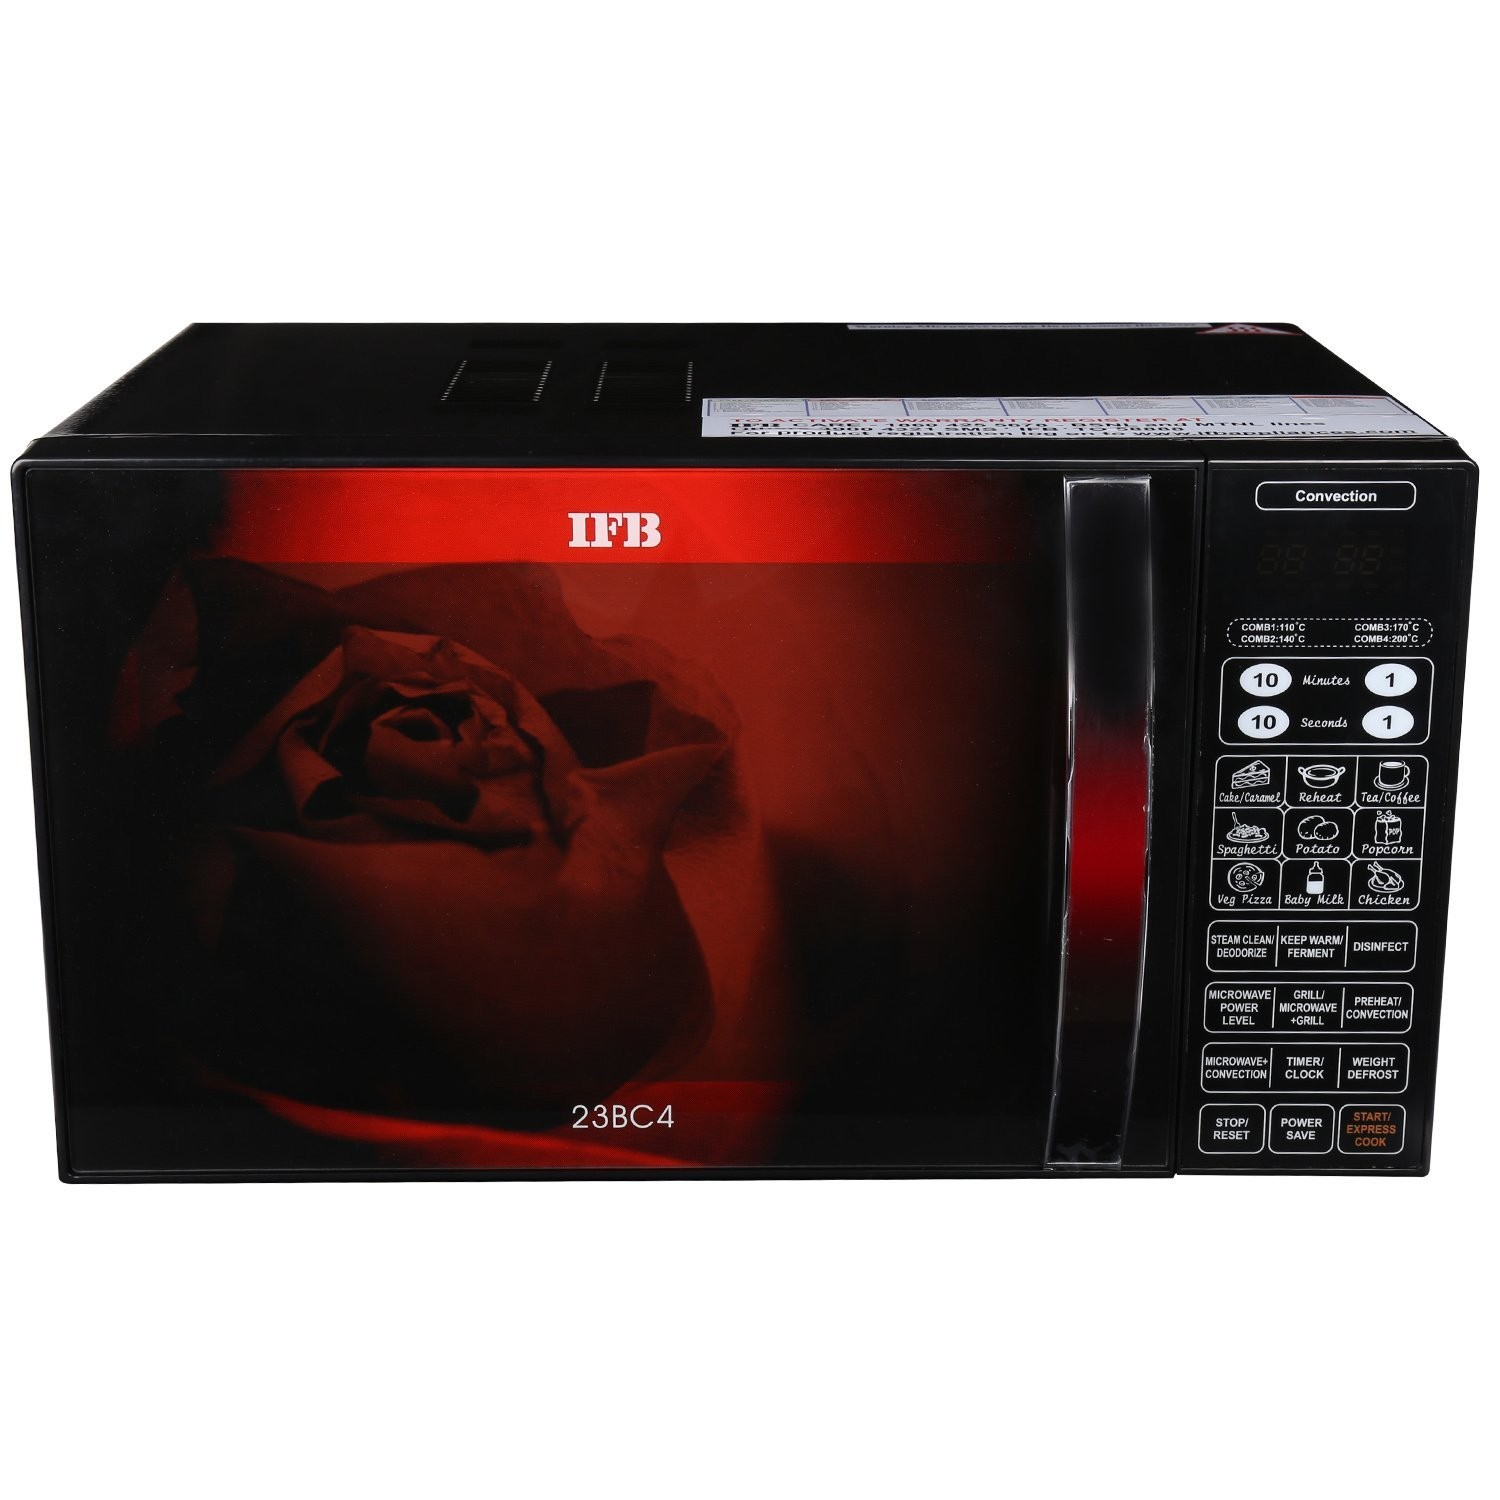 IFB Microwave Oven 23BC4